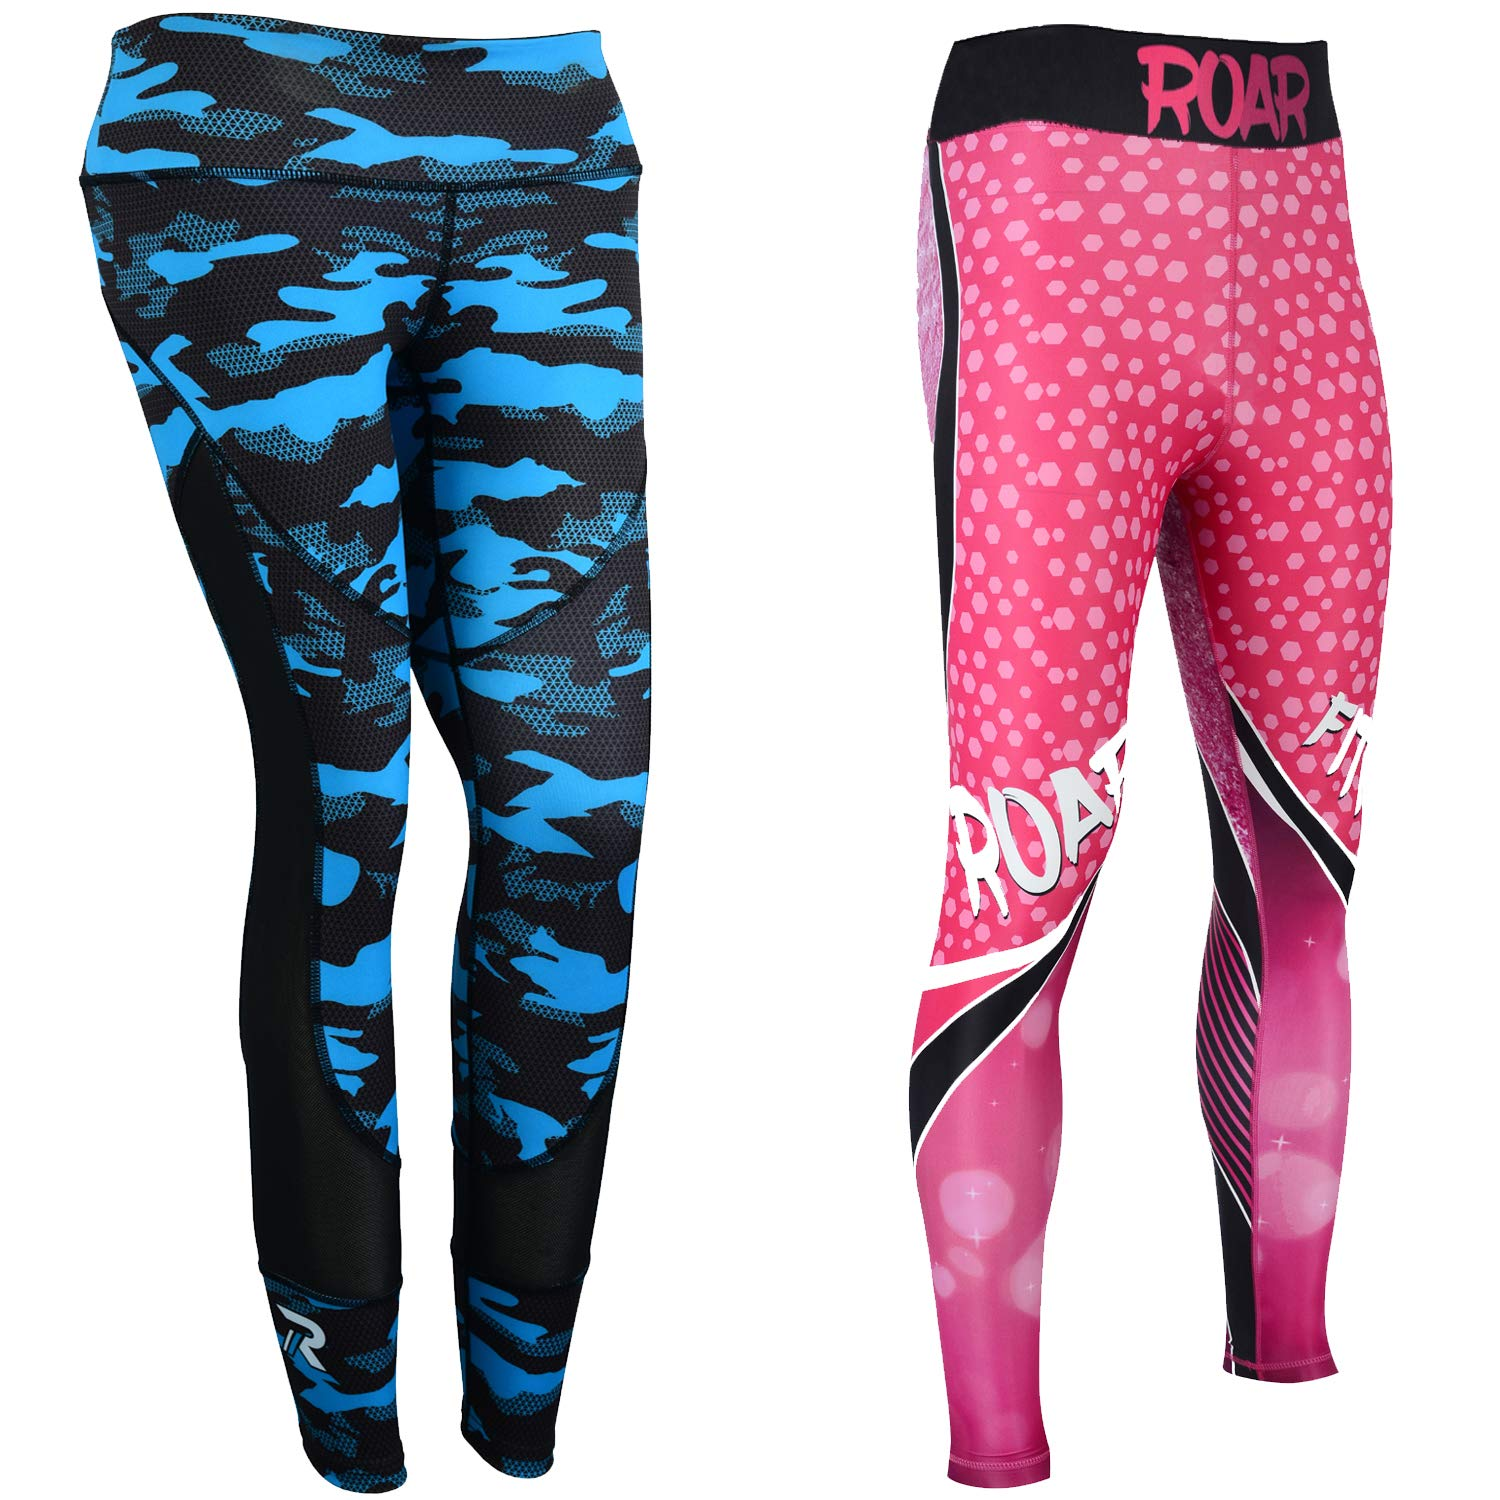 Roar No Gi Full Set Ladies Sports Bra BJJ Leggings MMA Shorts & Grappling Rash Guard Female Fight Wear (Only for Ladies Now New Sizing Updated) by ROAR-INT